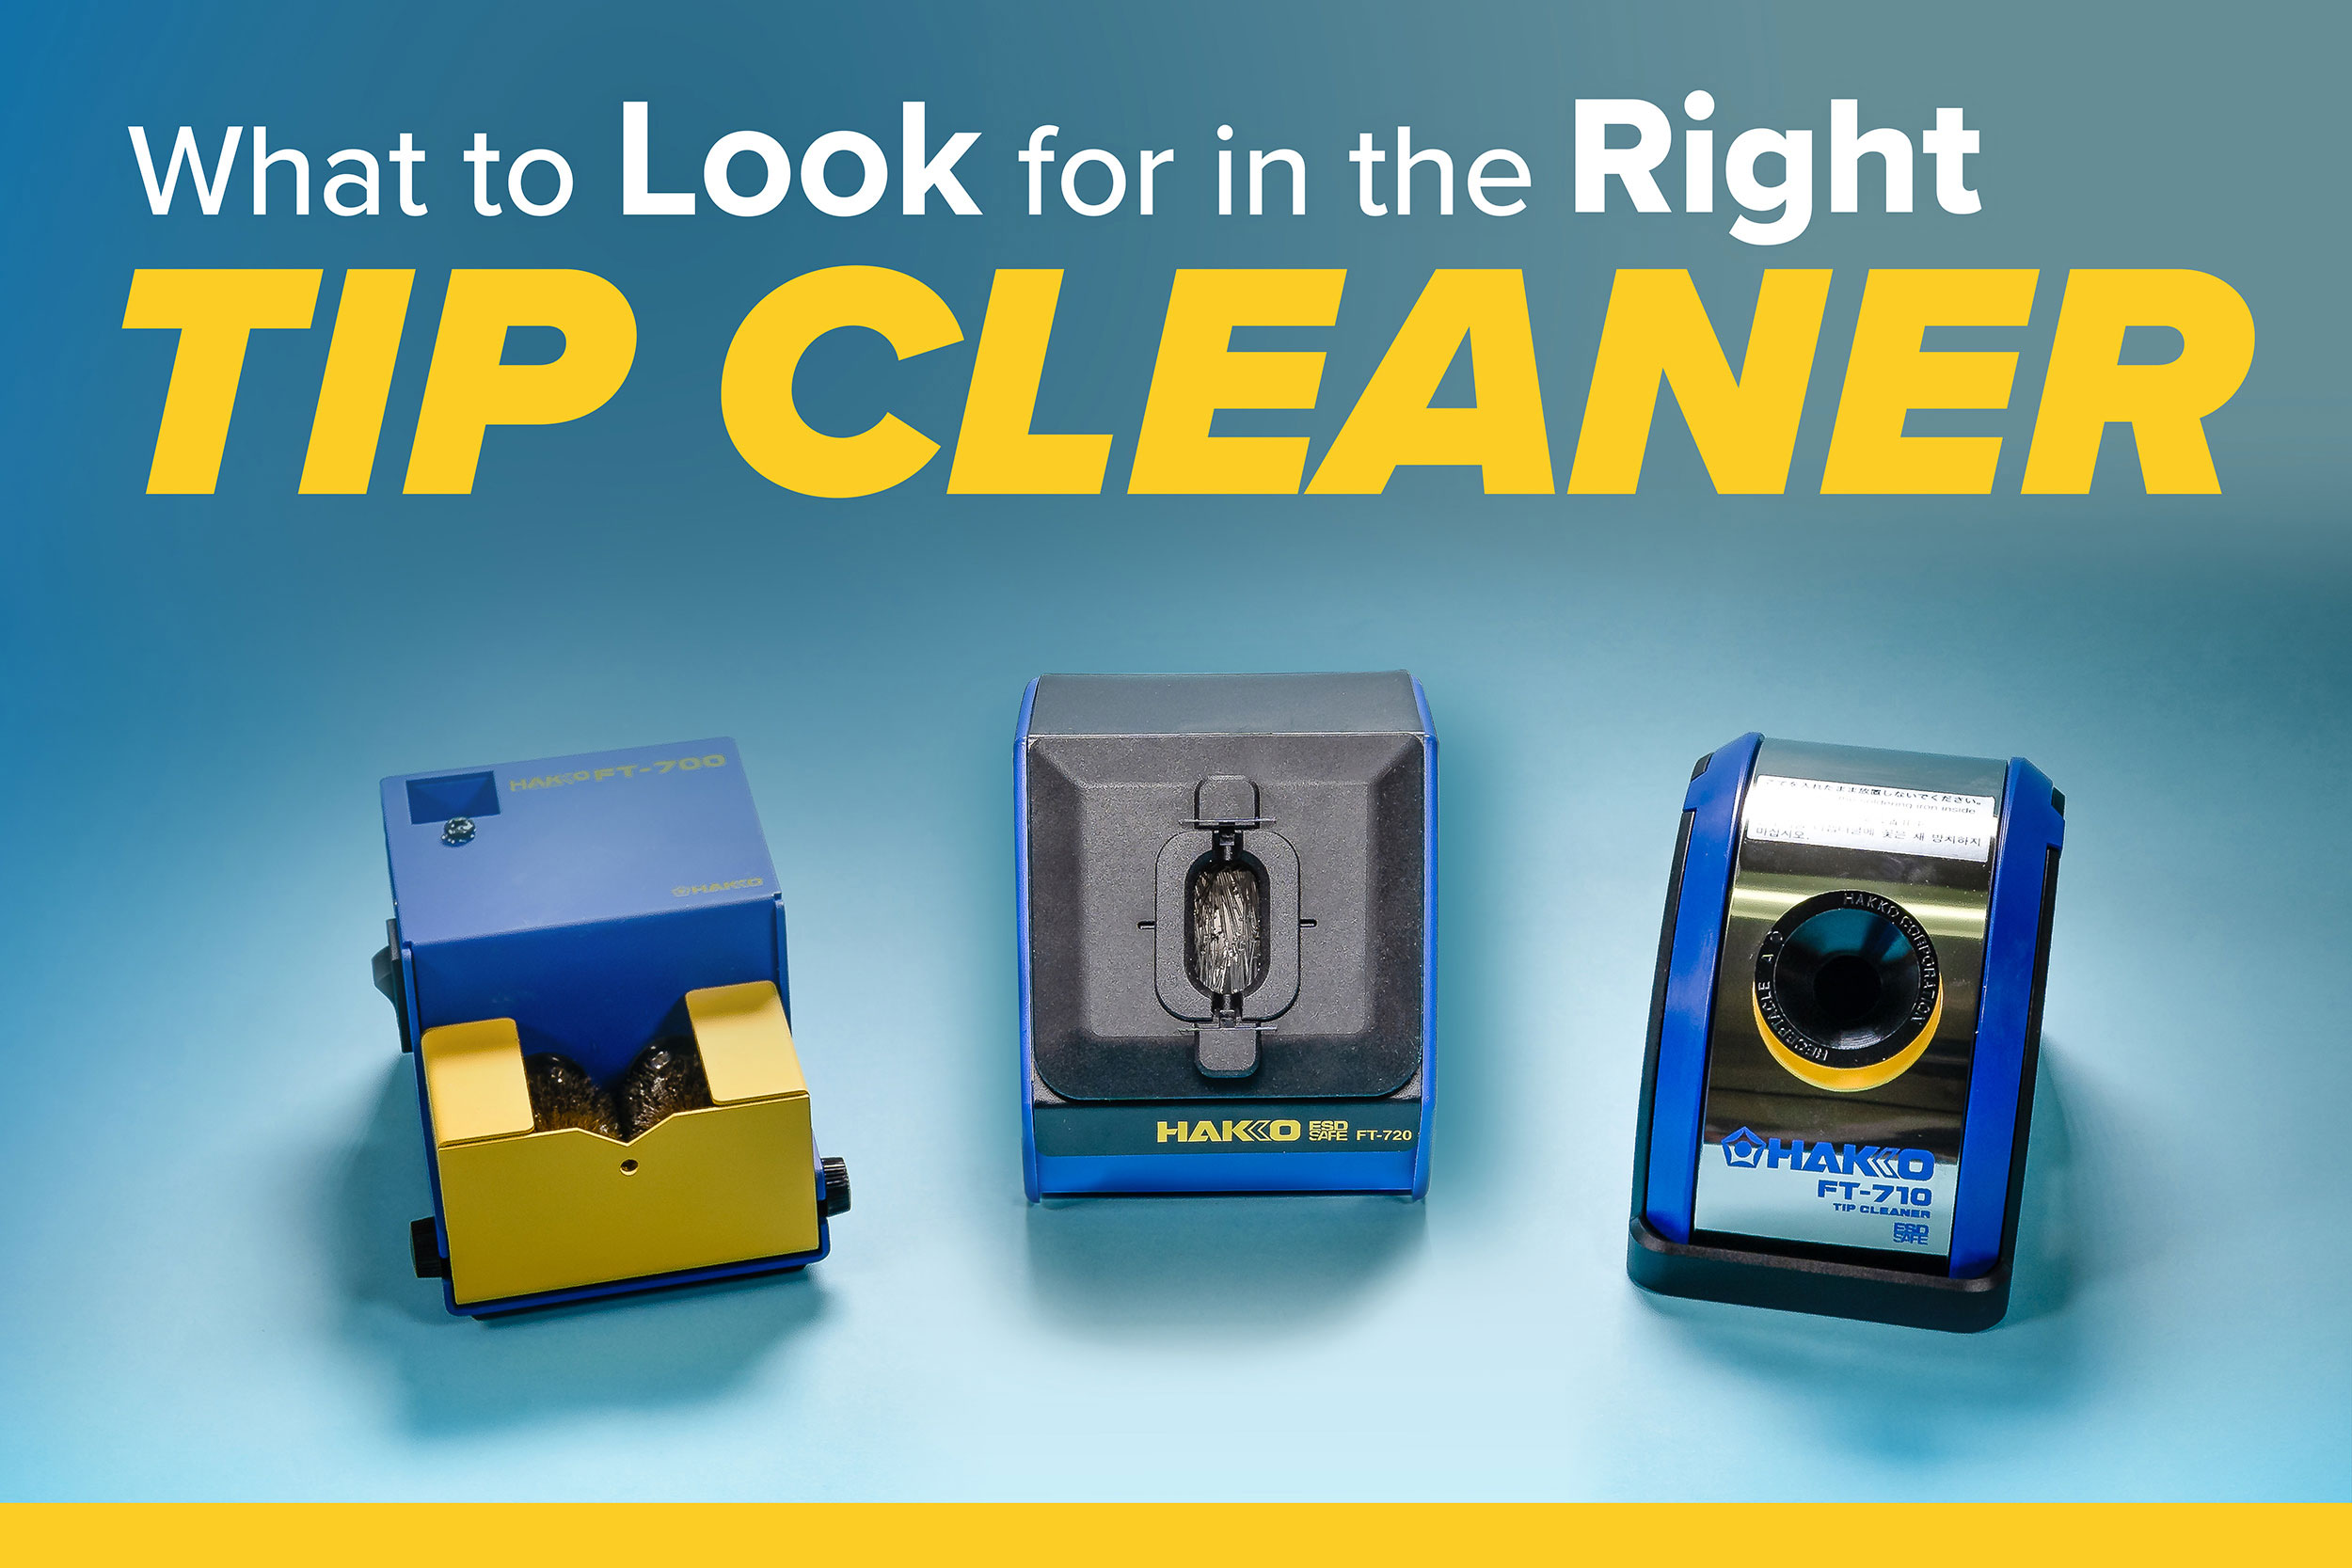 What to Look for in the Right Tip Cleaner